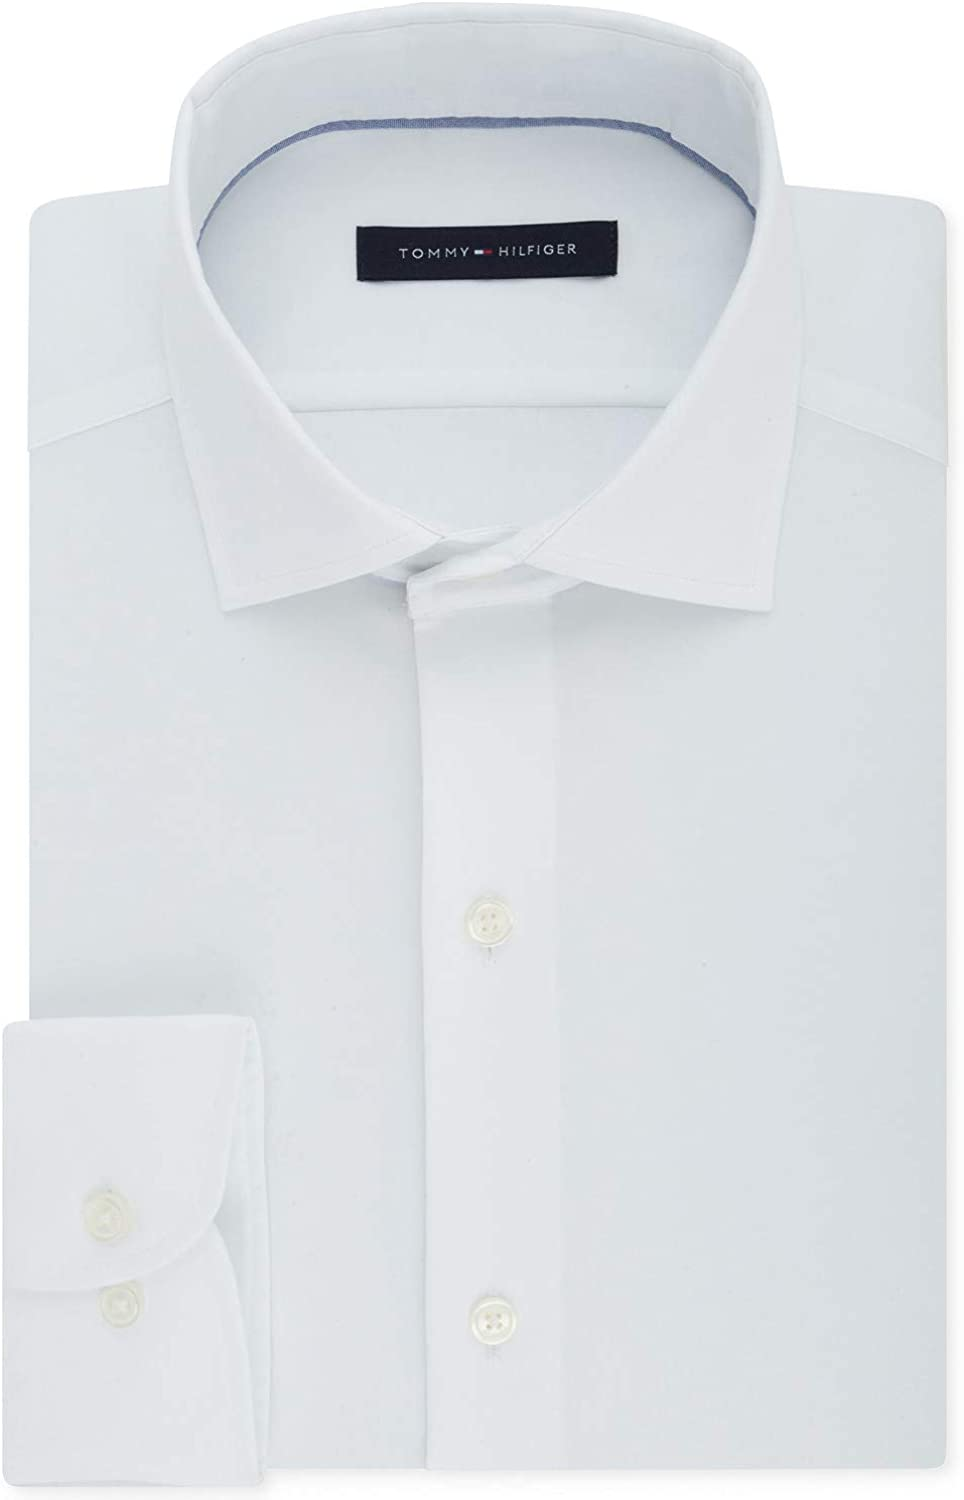 Tommy Hilfiger Mens White Collared Classic Fit Stretch Dress Shirt 15.5-32/33